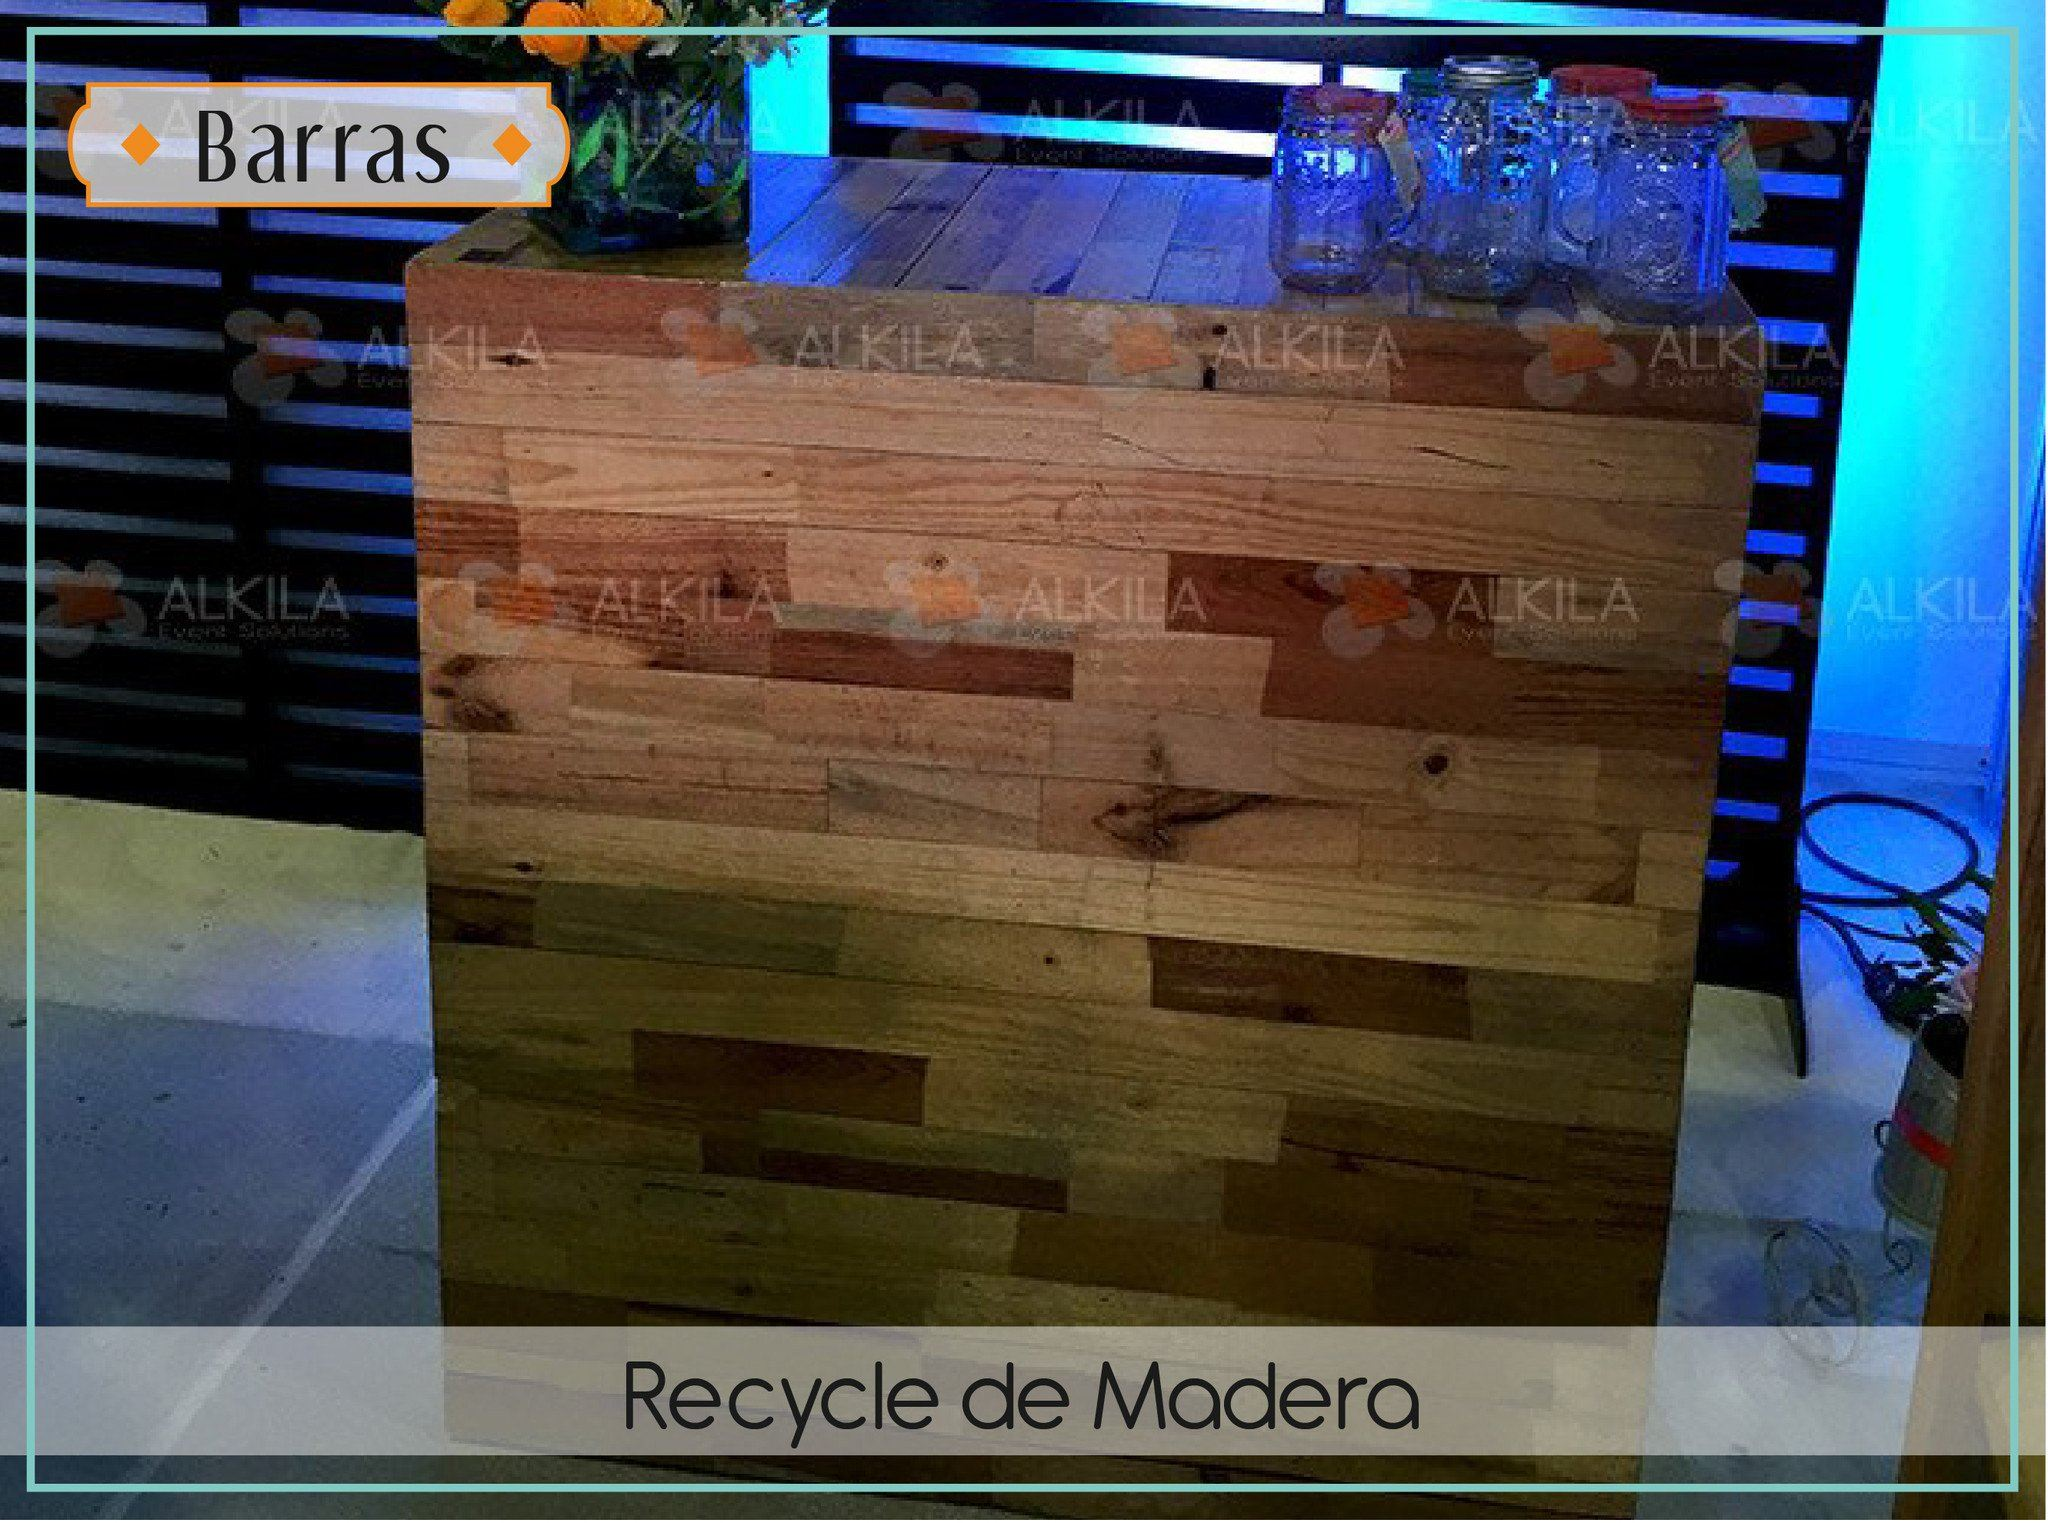 Barra recycle de Madera